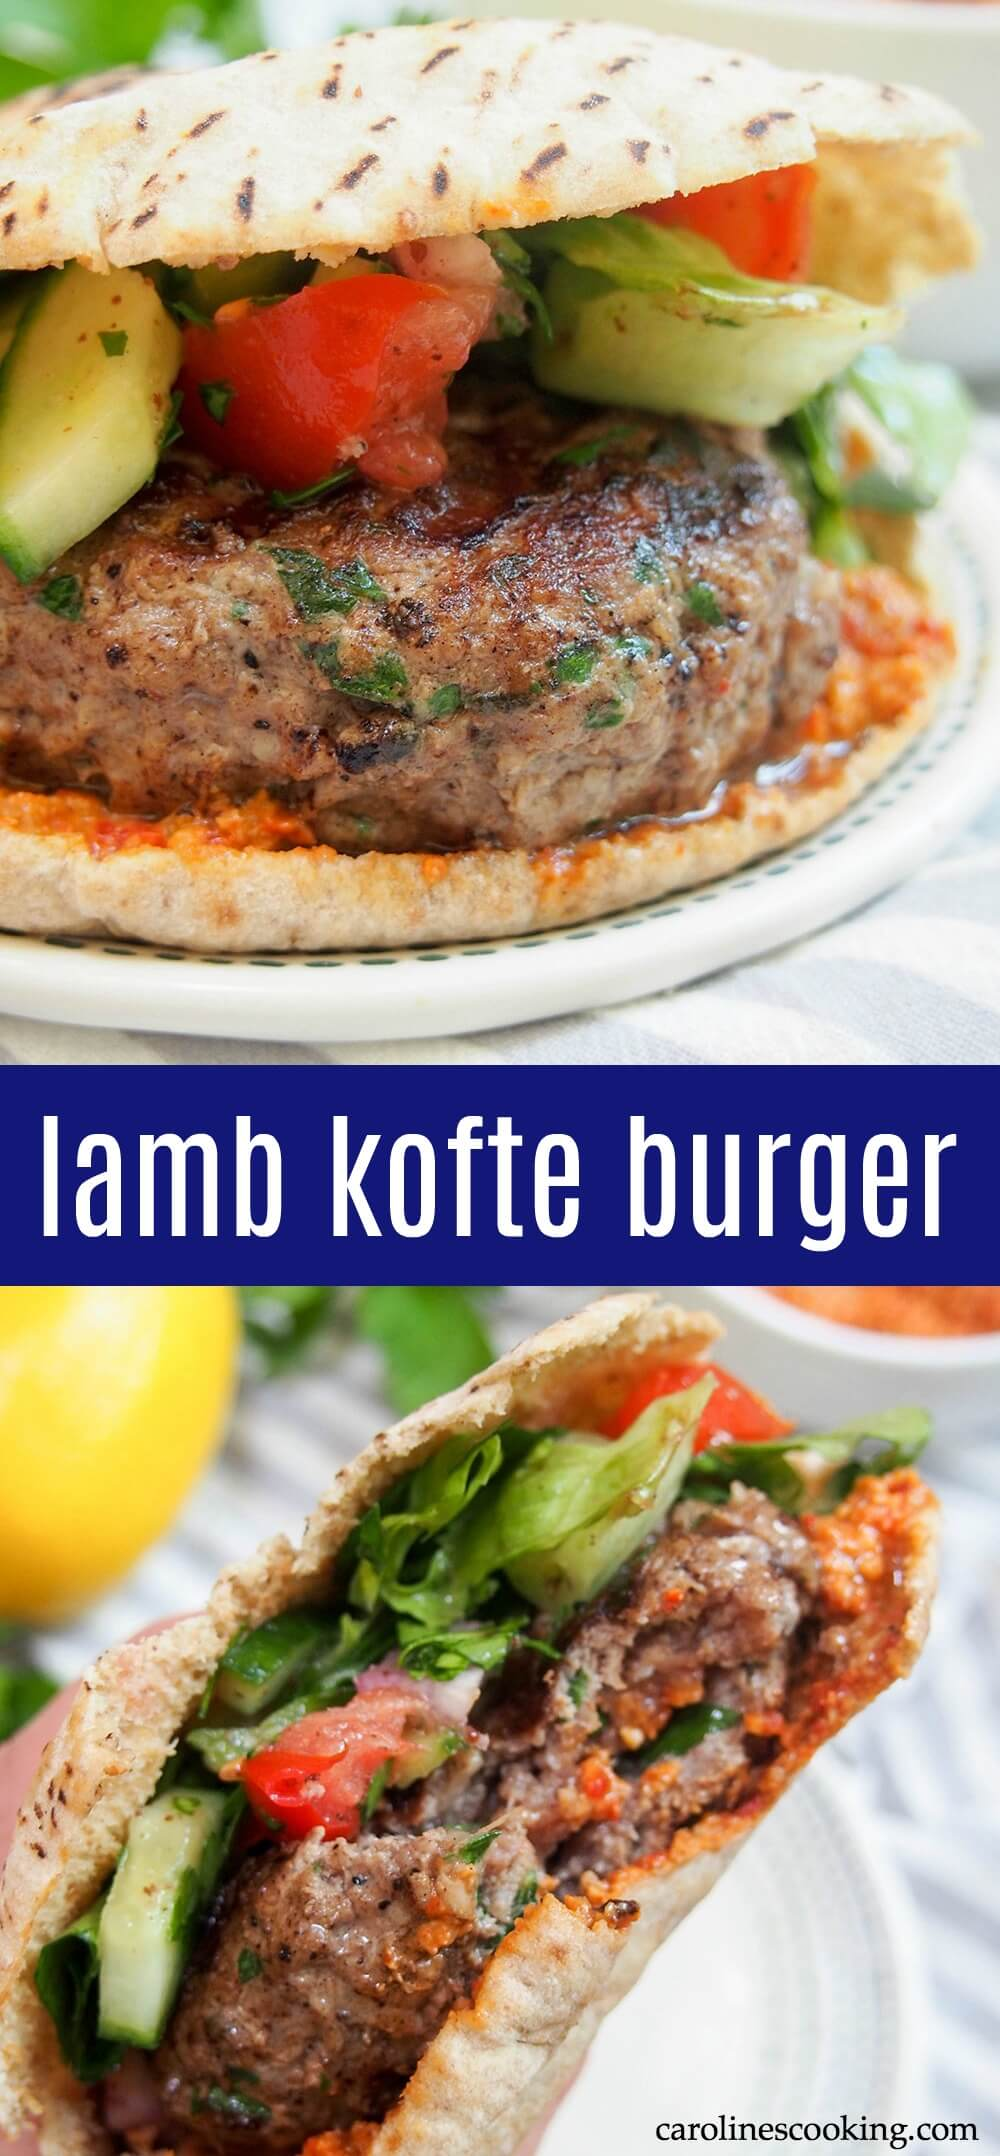 This lamb kofte burger is the perfect burger for when you want something that bit different. Not only are the flavors delicious, but you can cheat a little with ready-made components, or make it more from scratch as time allows. #lambburger #middleeasternfood #kofte #pita #burgermonth